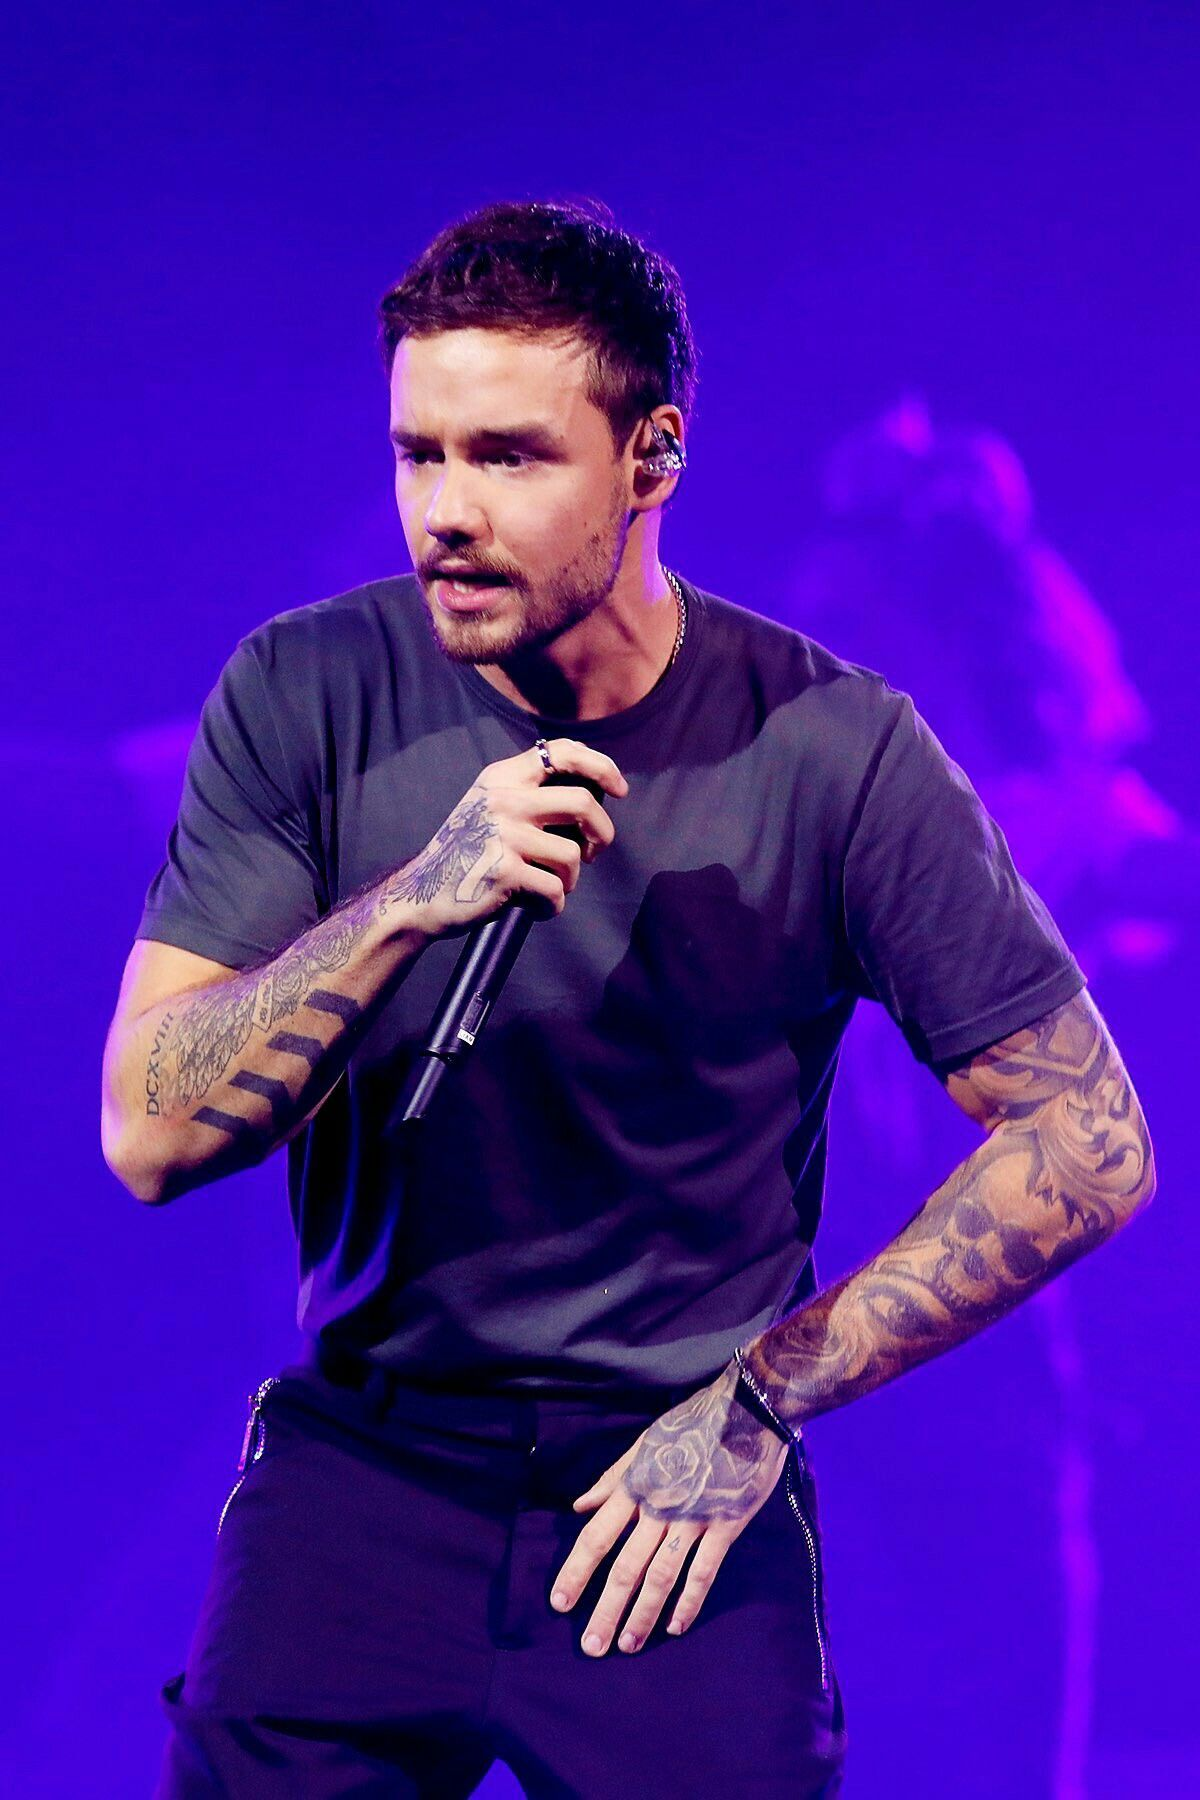 Liam Payne 😍 performing at Westfield 10th birthday concert